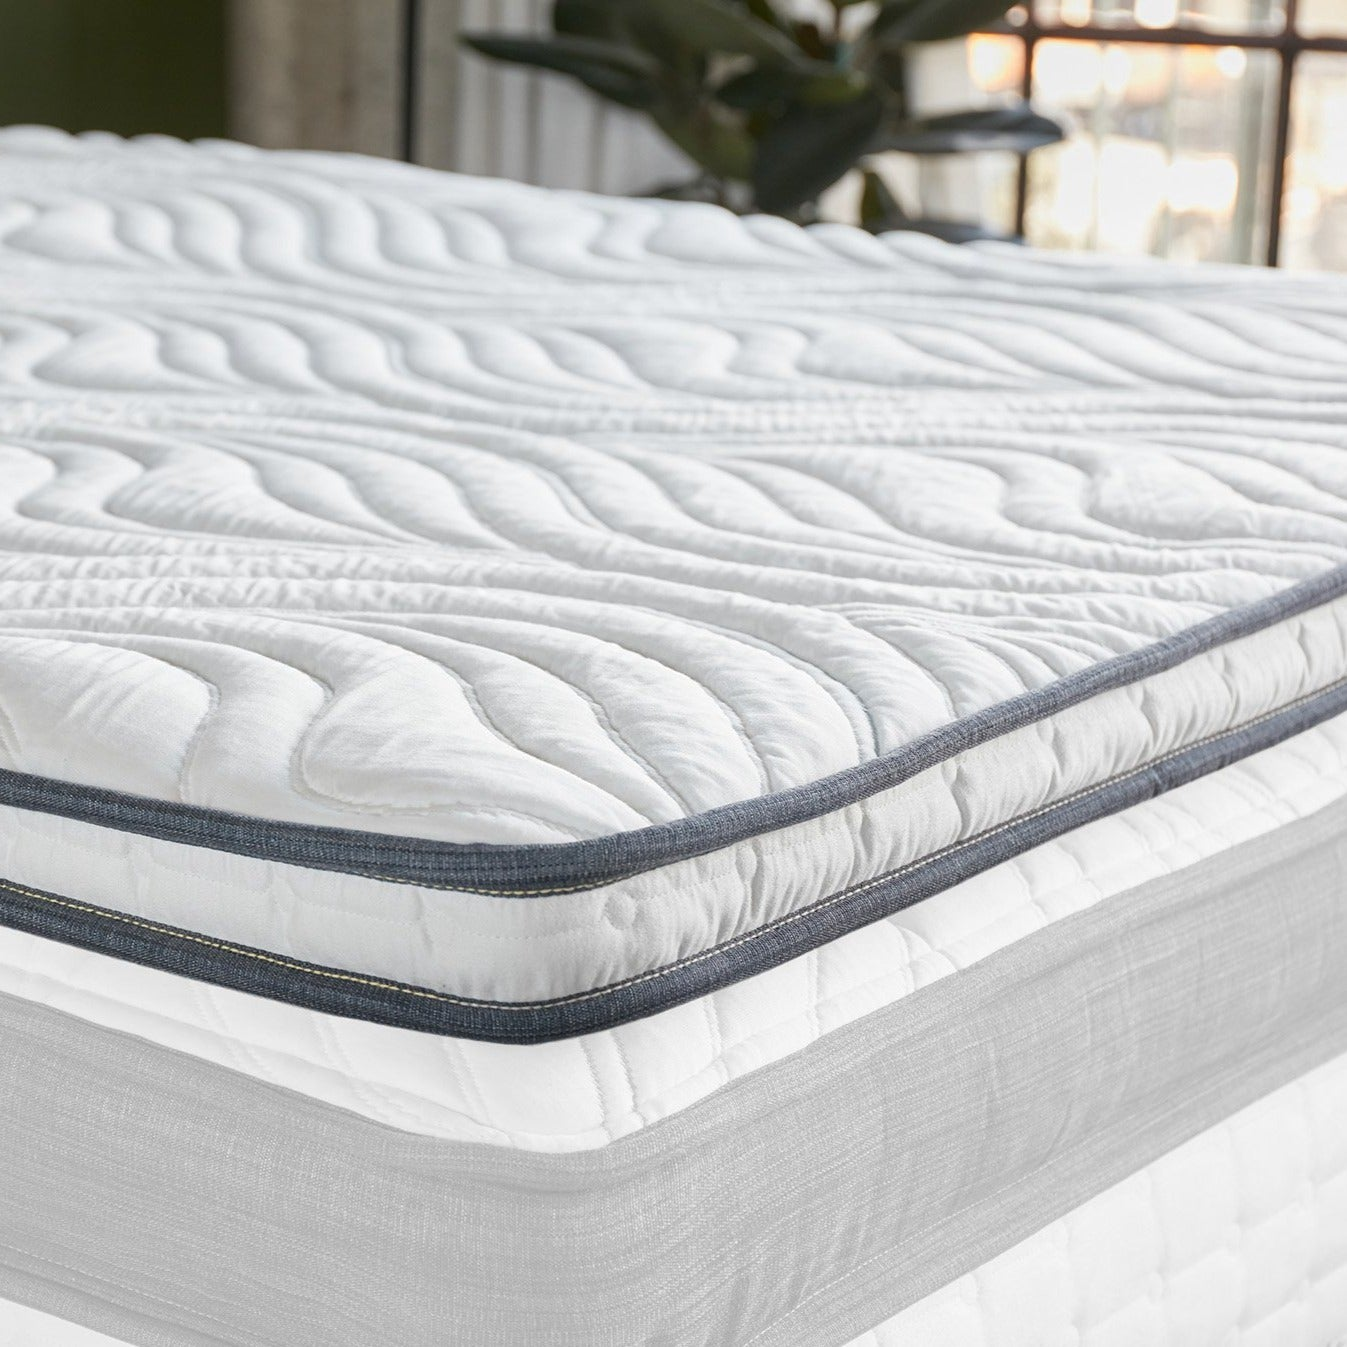 Oceano Memory Foam Mattress Topper View 1